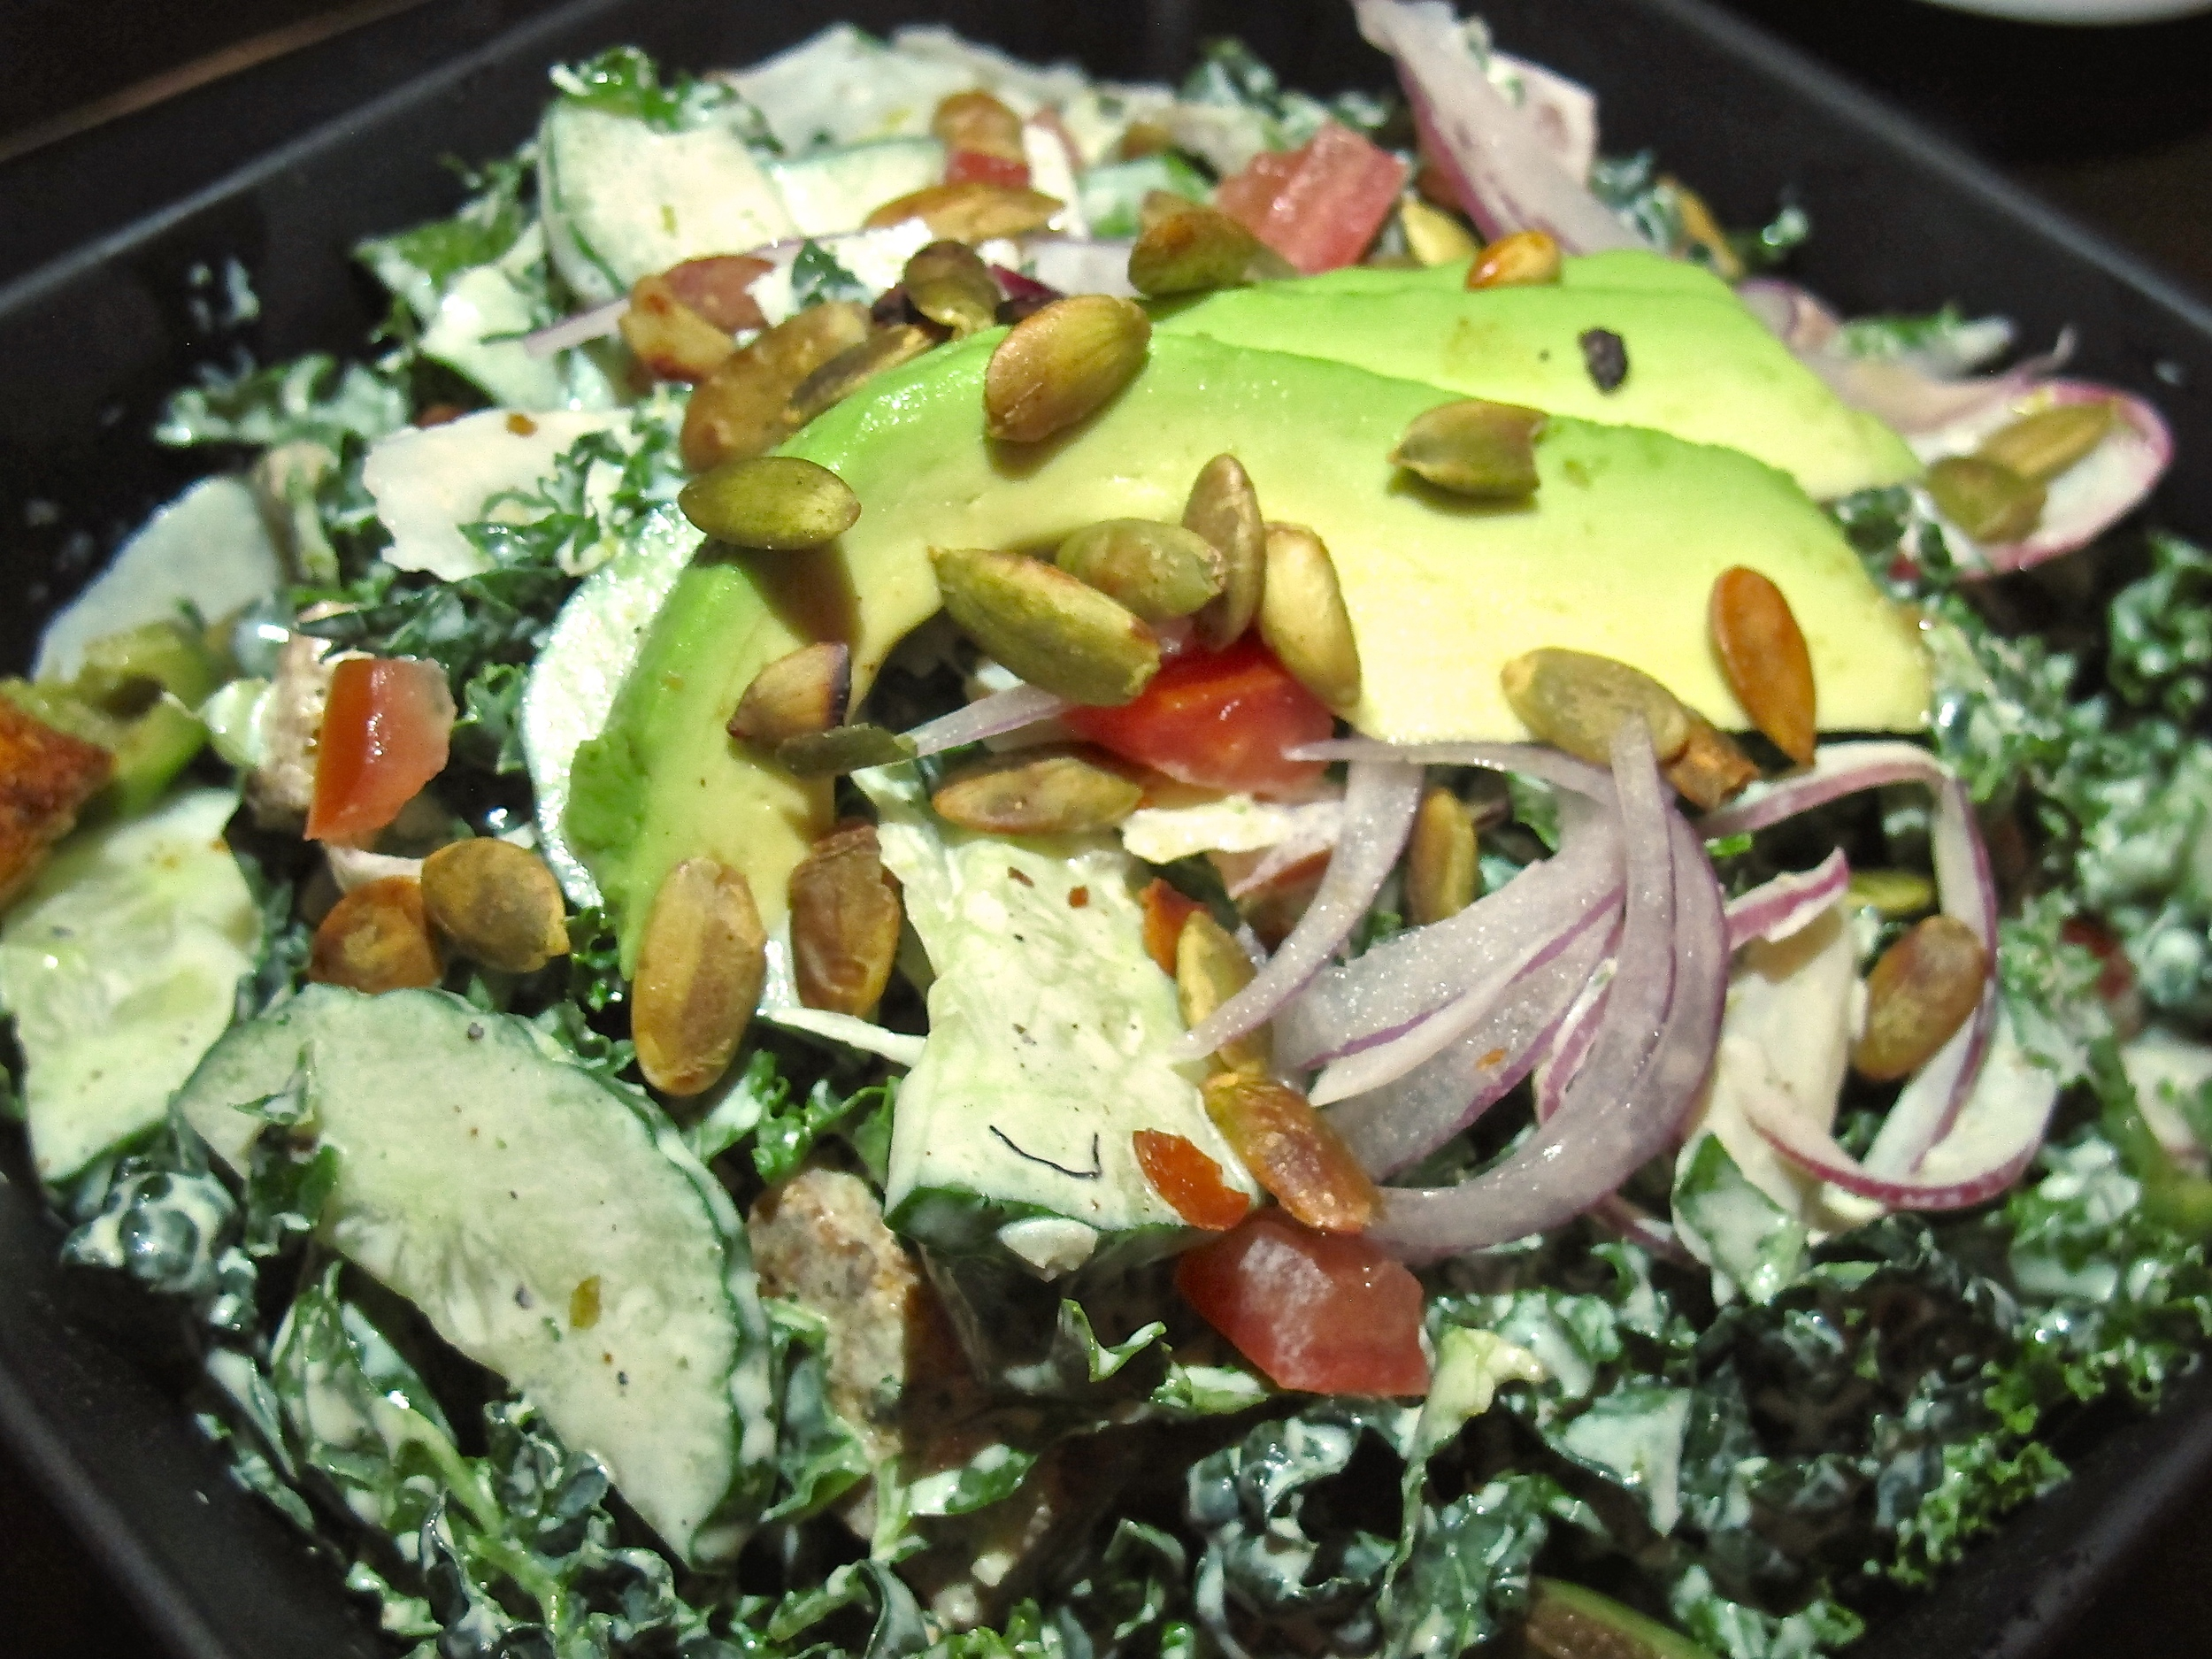 Ashland Hill kale salad